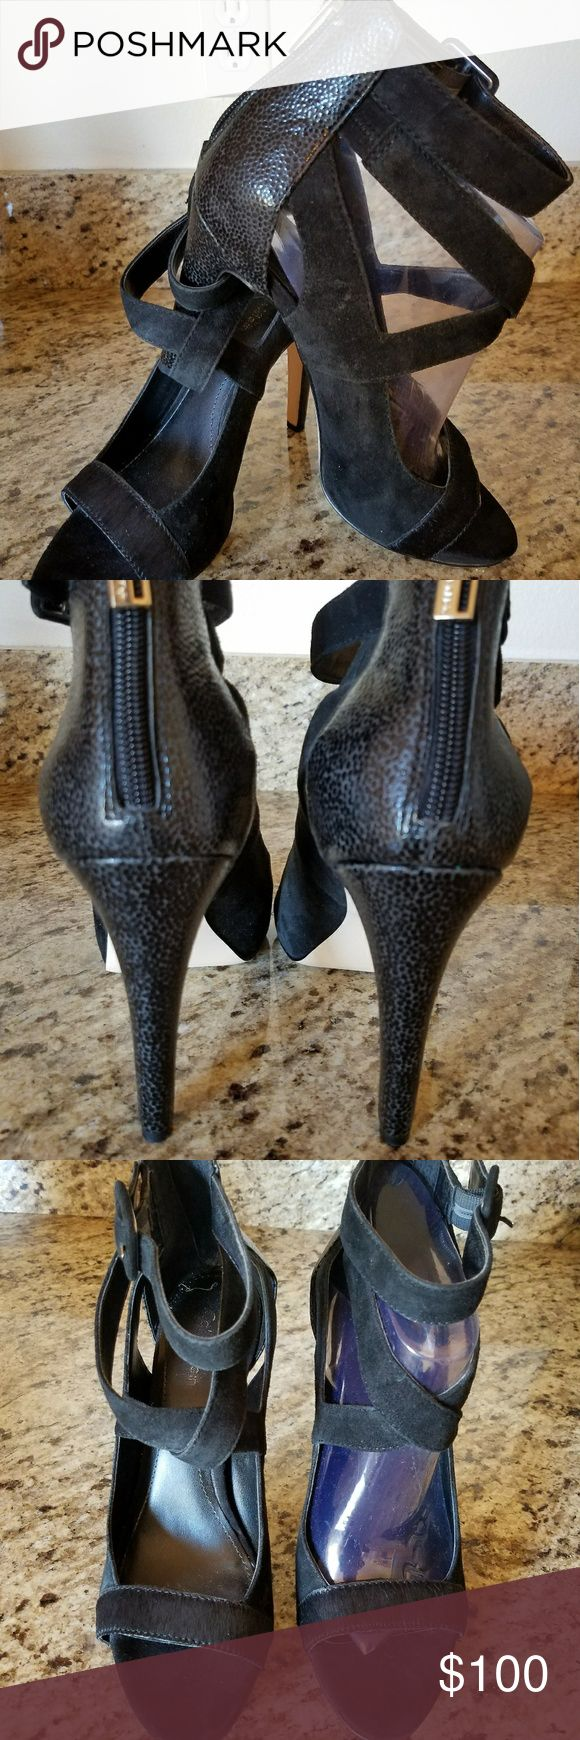 Women's Calvin Klein shoes Leather, suede, cowskin heels. Worn once, no box. Purchased on sale for $175. Excellent condition . Calvin Klein Shoes Heels